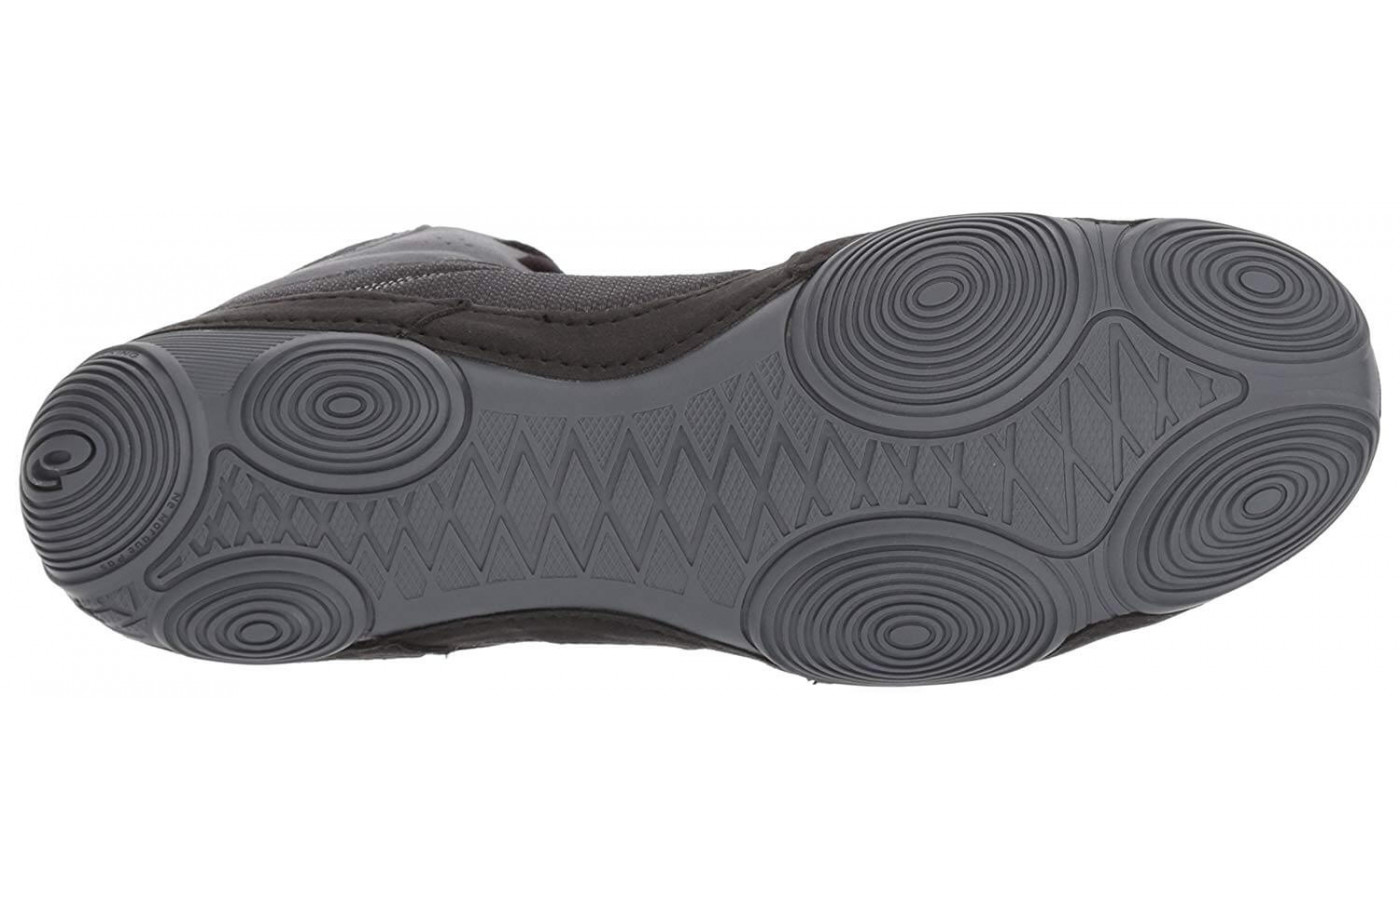 The Snapdown 2's outsole features Serradial Traction Pods